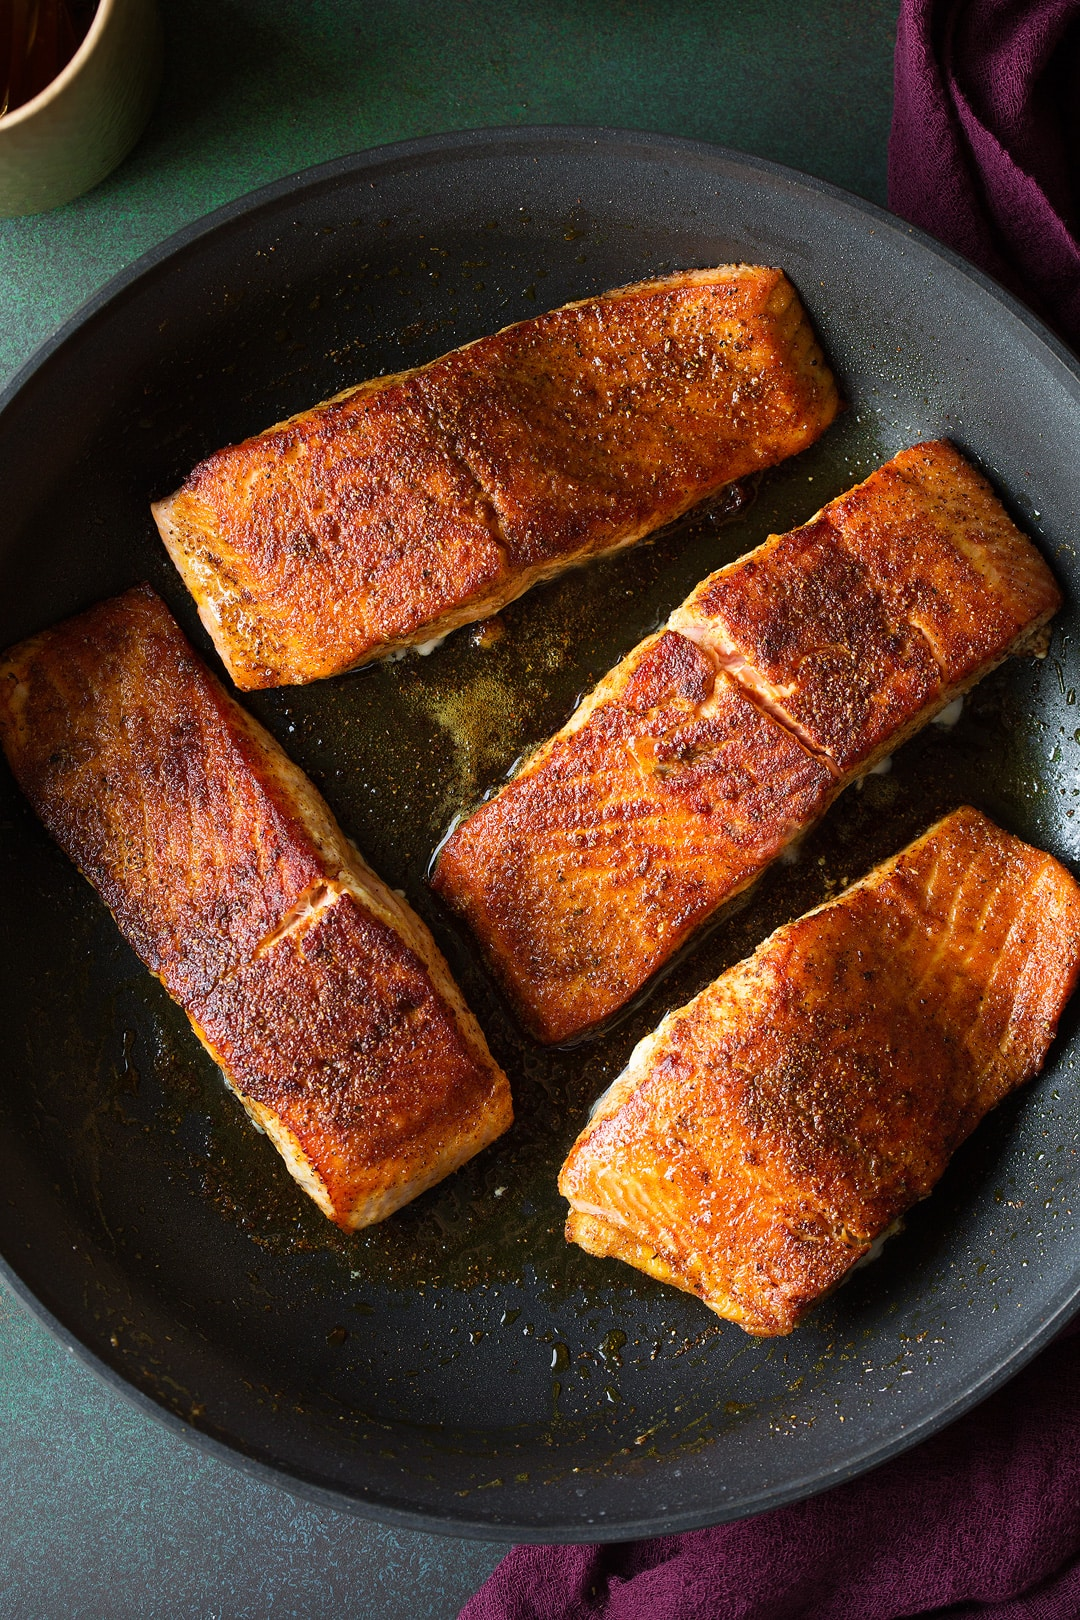 Pan seared salmon seasoned with moroccan spices